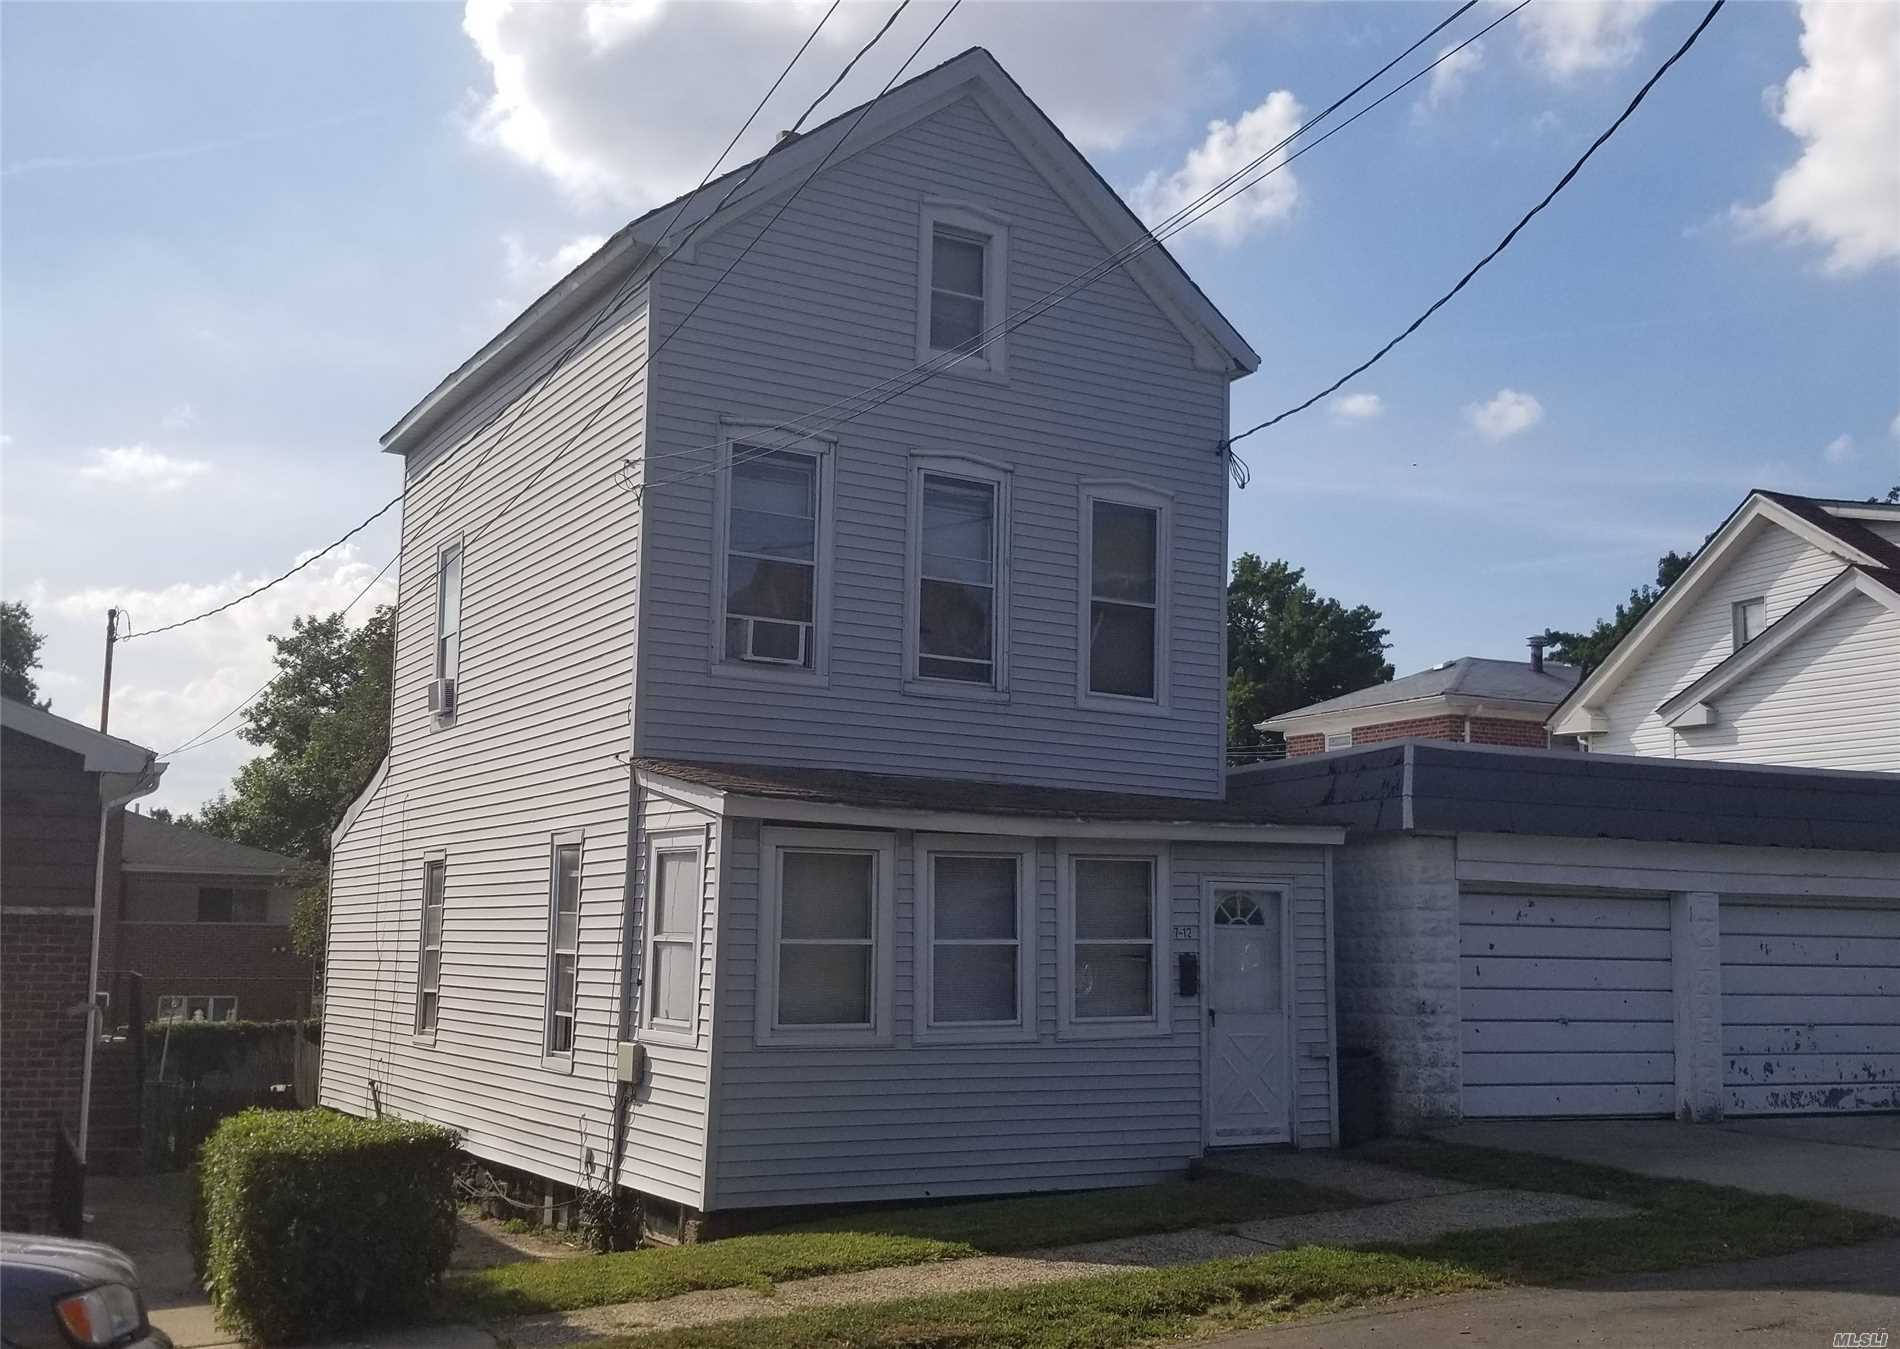 Outstanding Location In A Very Desirable Part Of College Point. Great Opportunity For A House Thats Needs Some Tlc To Make It Sparkle.  Make This Home Yours Before Another Family Does. Won't Last!!!